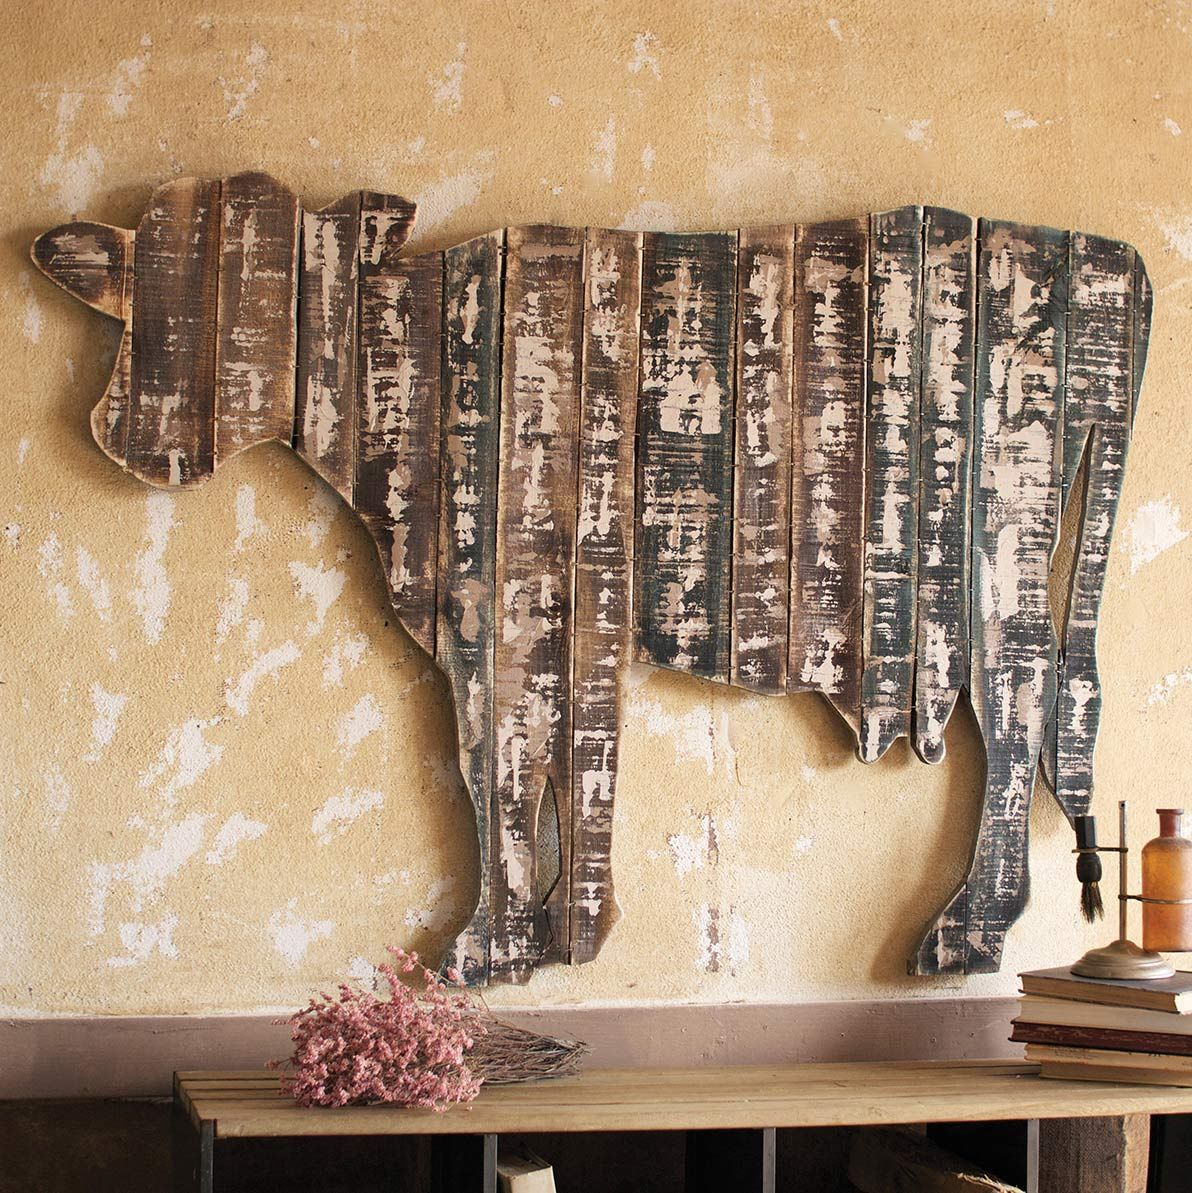 Reclaimed Wood Cow Wall Hanging Barn Wood Projects Cow Wall Art Cow Decor